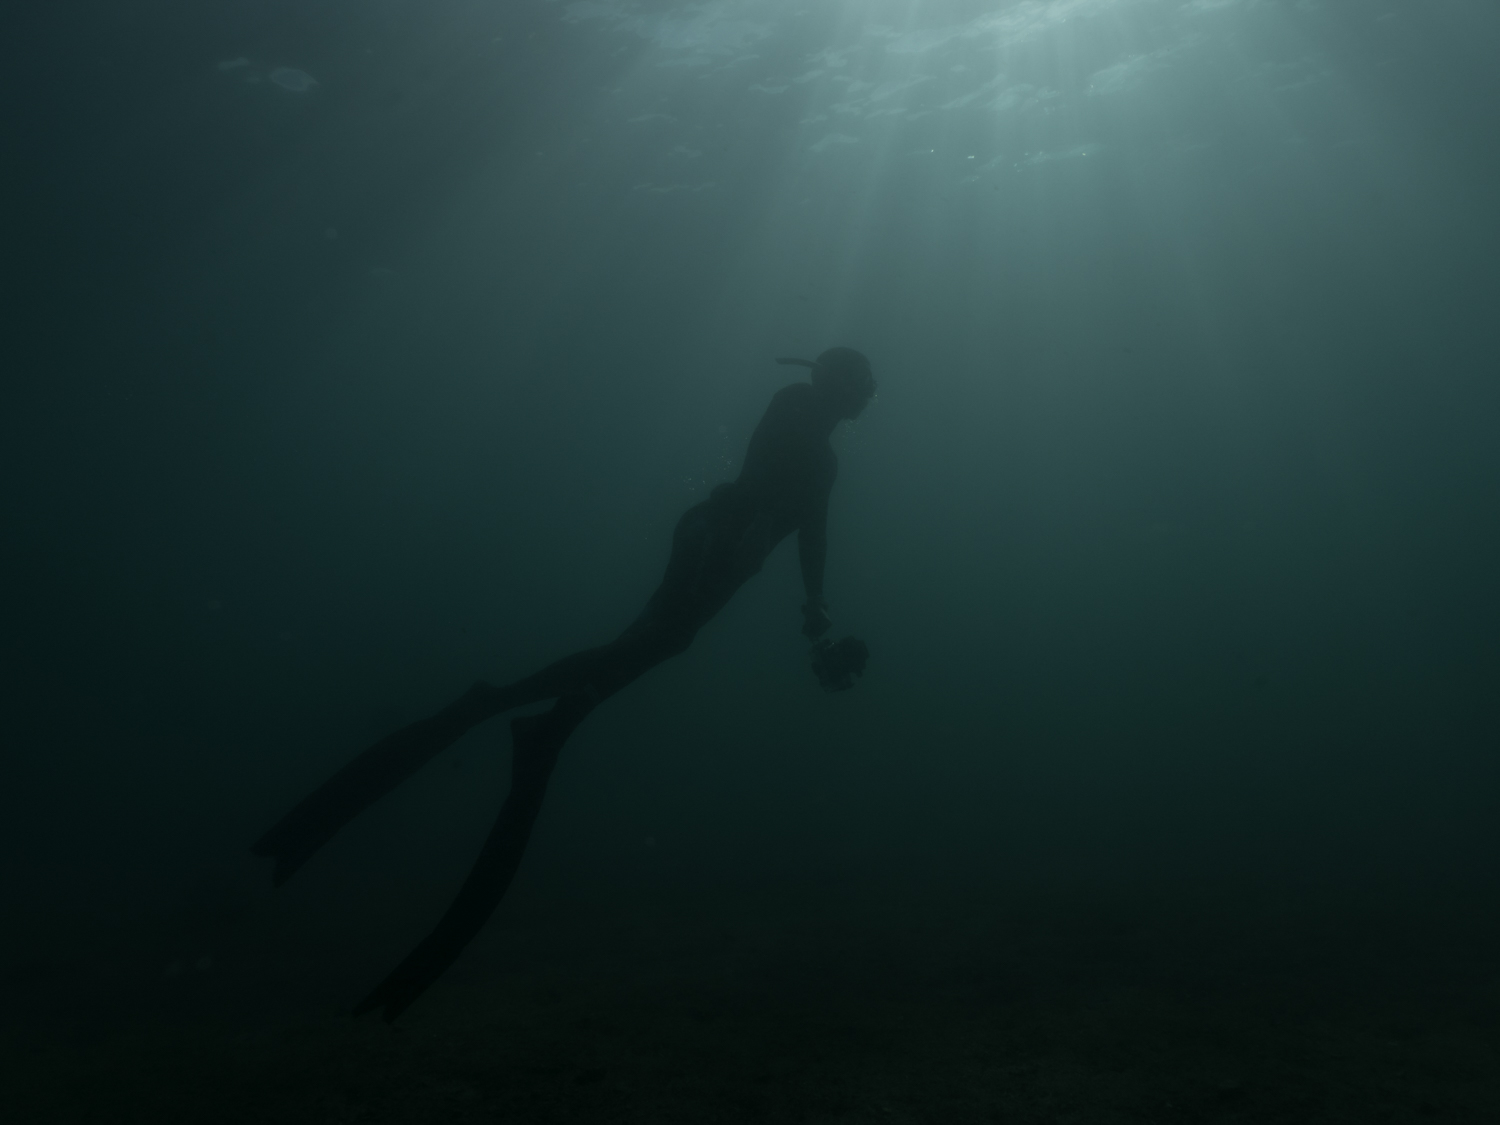 Finding my way in the ocean while making the most of life.Join me for freediving courses in Sydney Australia over summer or learn to master surf survival skills. check out the resources and articles for tips on how to improve your freedive skills and training. -